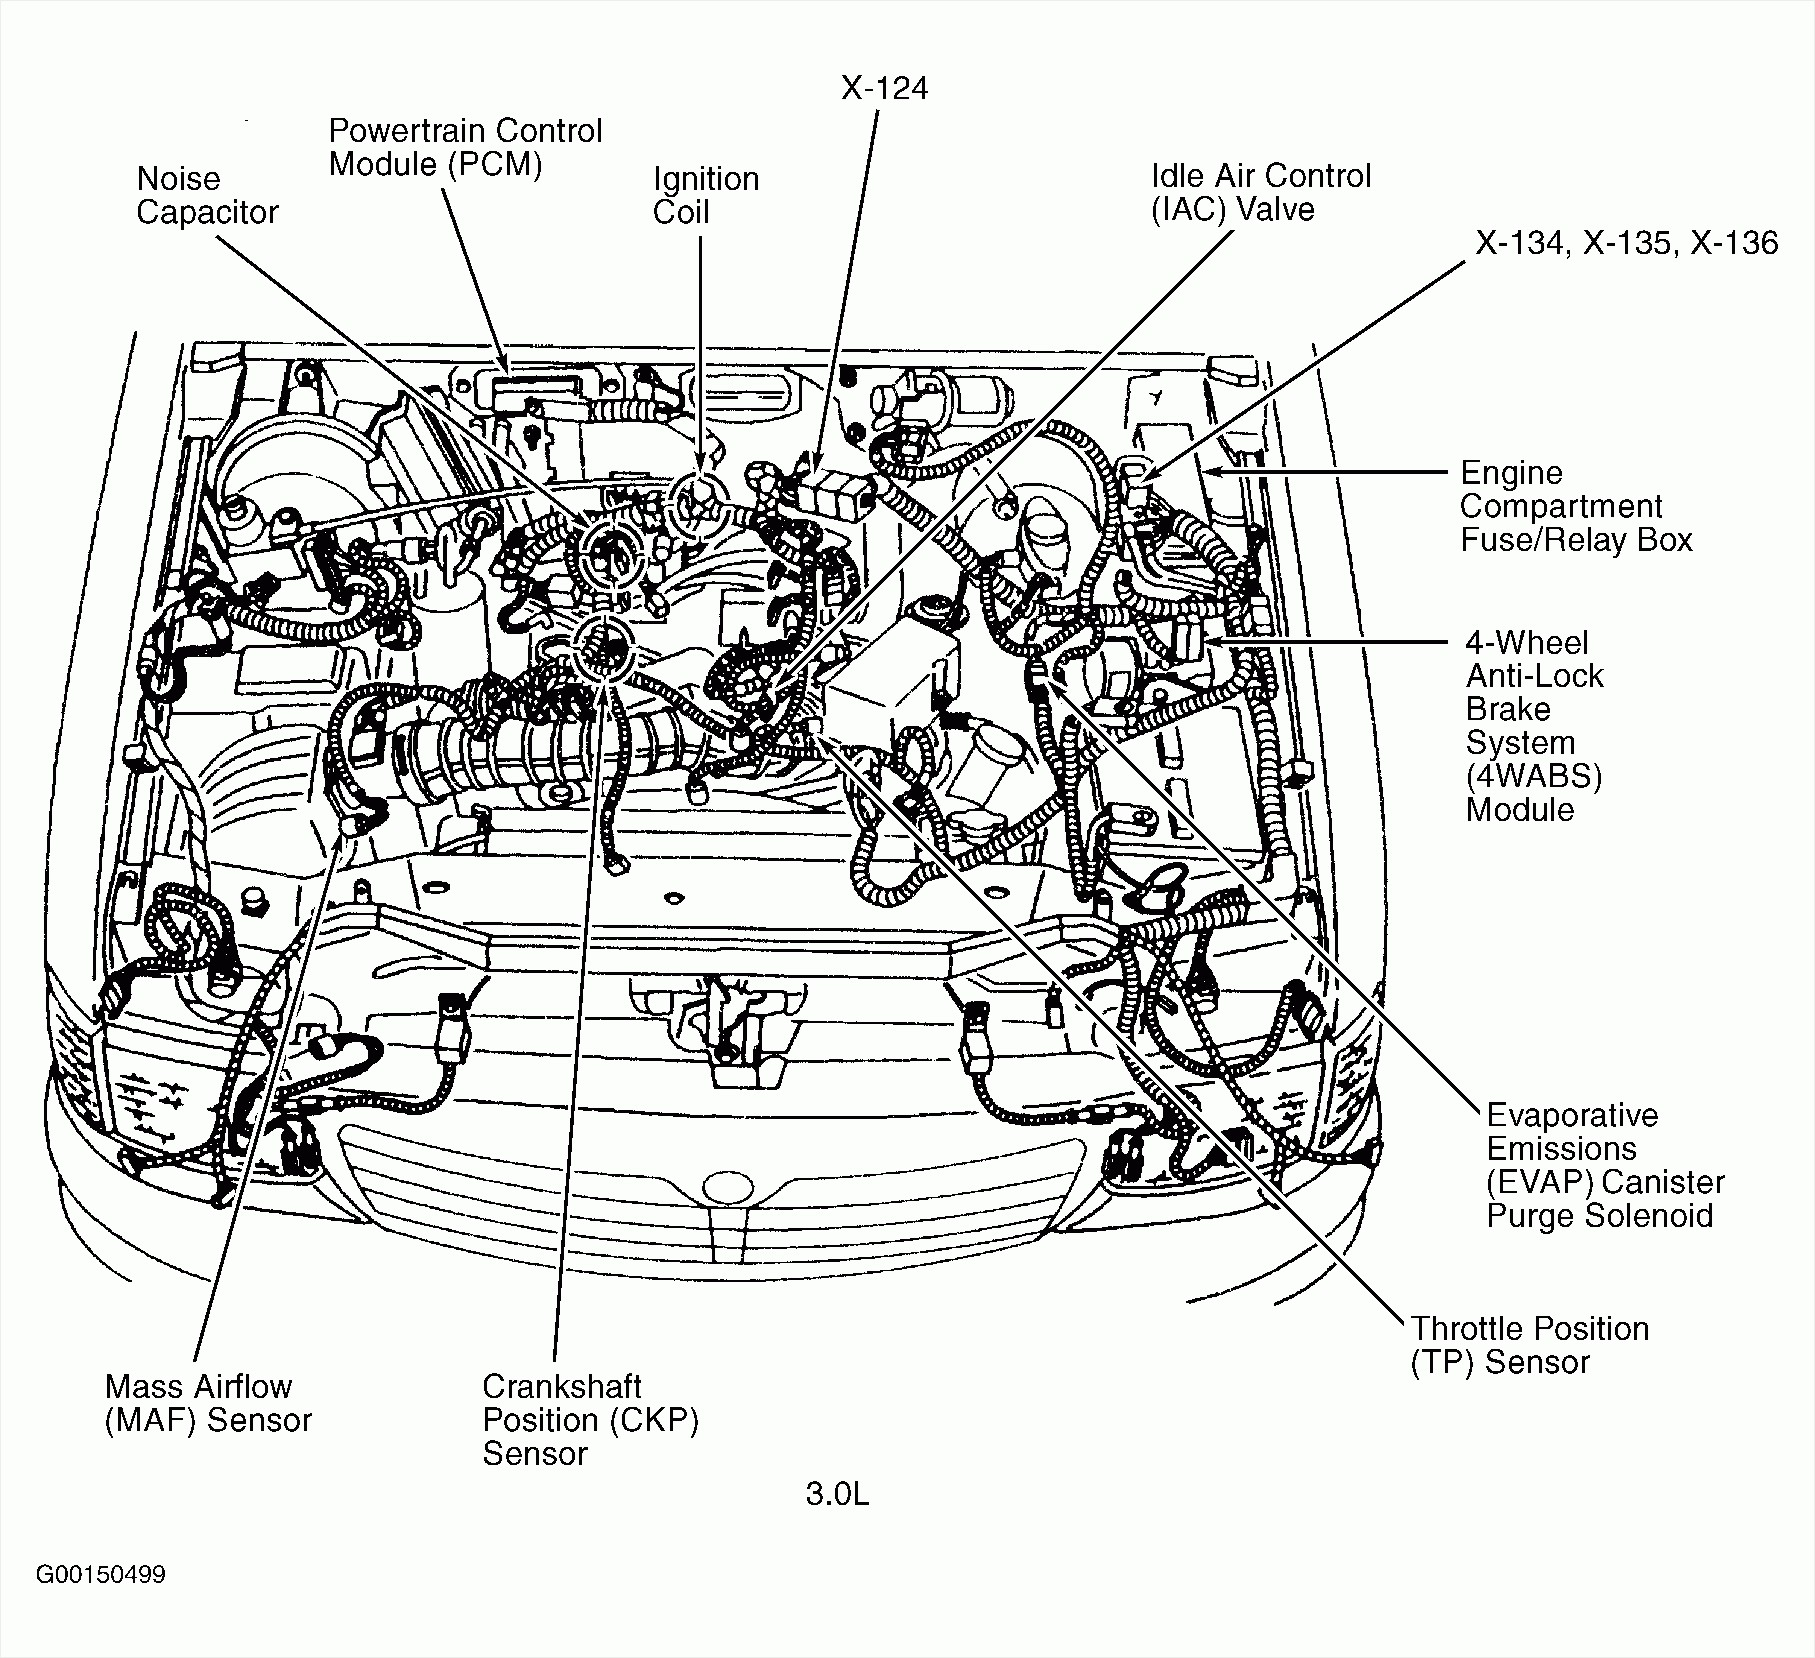 hight resolution of 2000 mazda mpv engine coolant diagram wiring diagram load 2000 mazda mpv engine coolant diagram